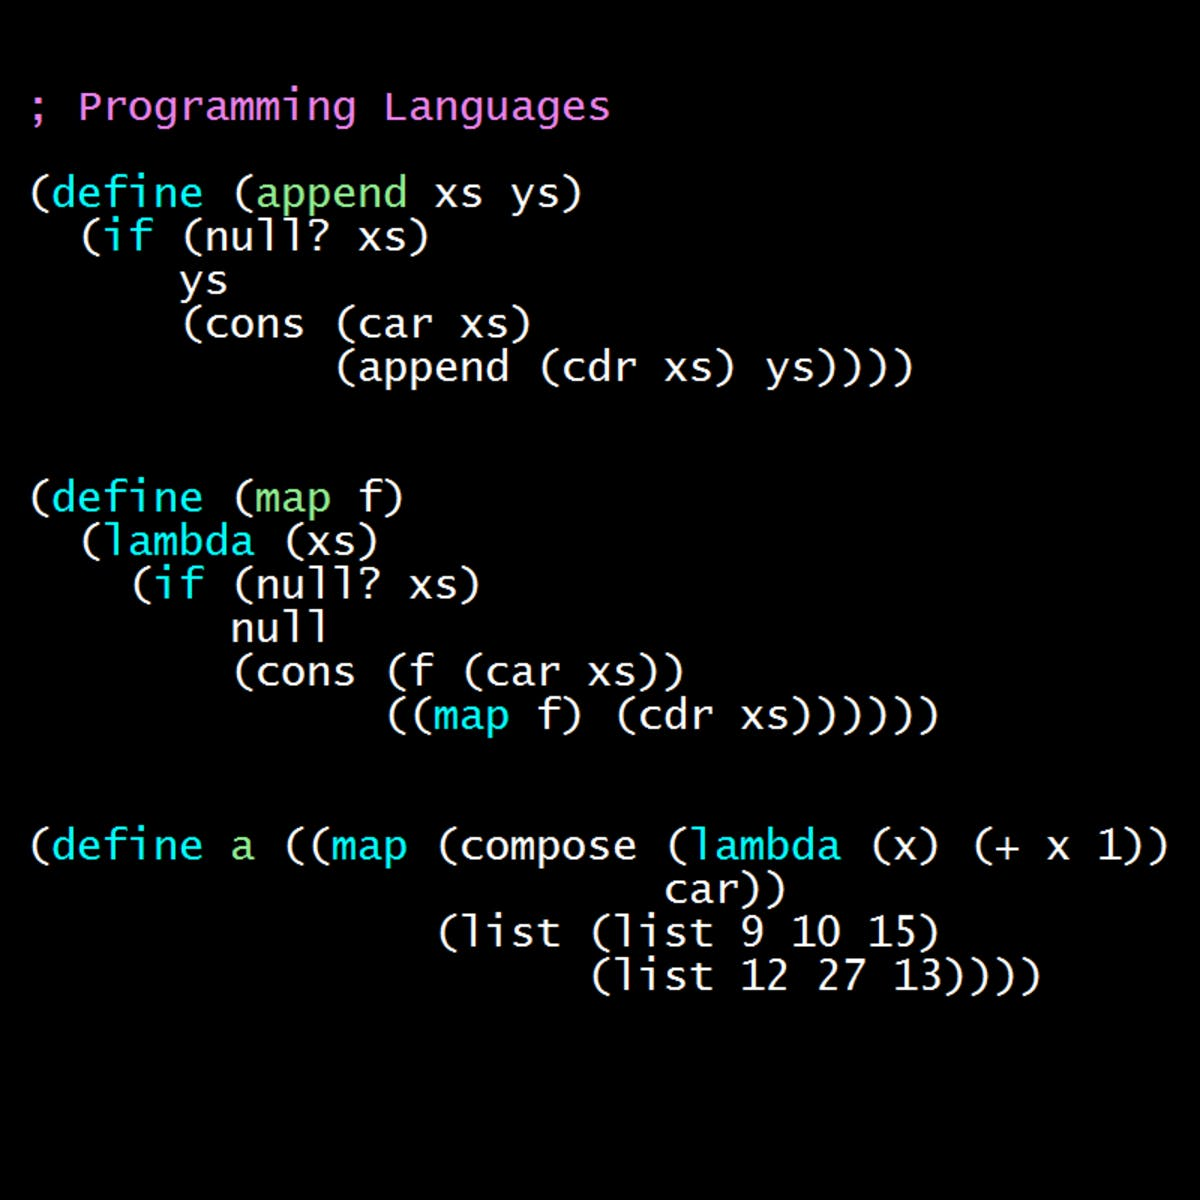 Programming Languages, Part B